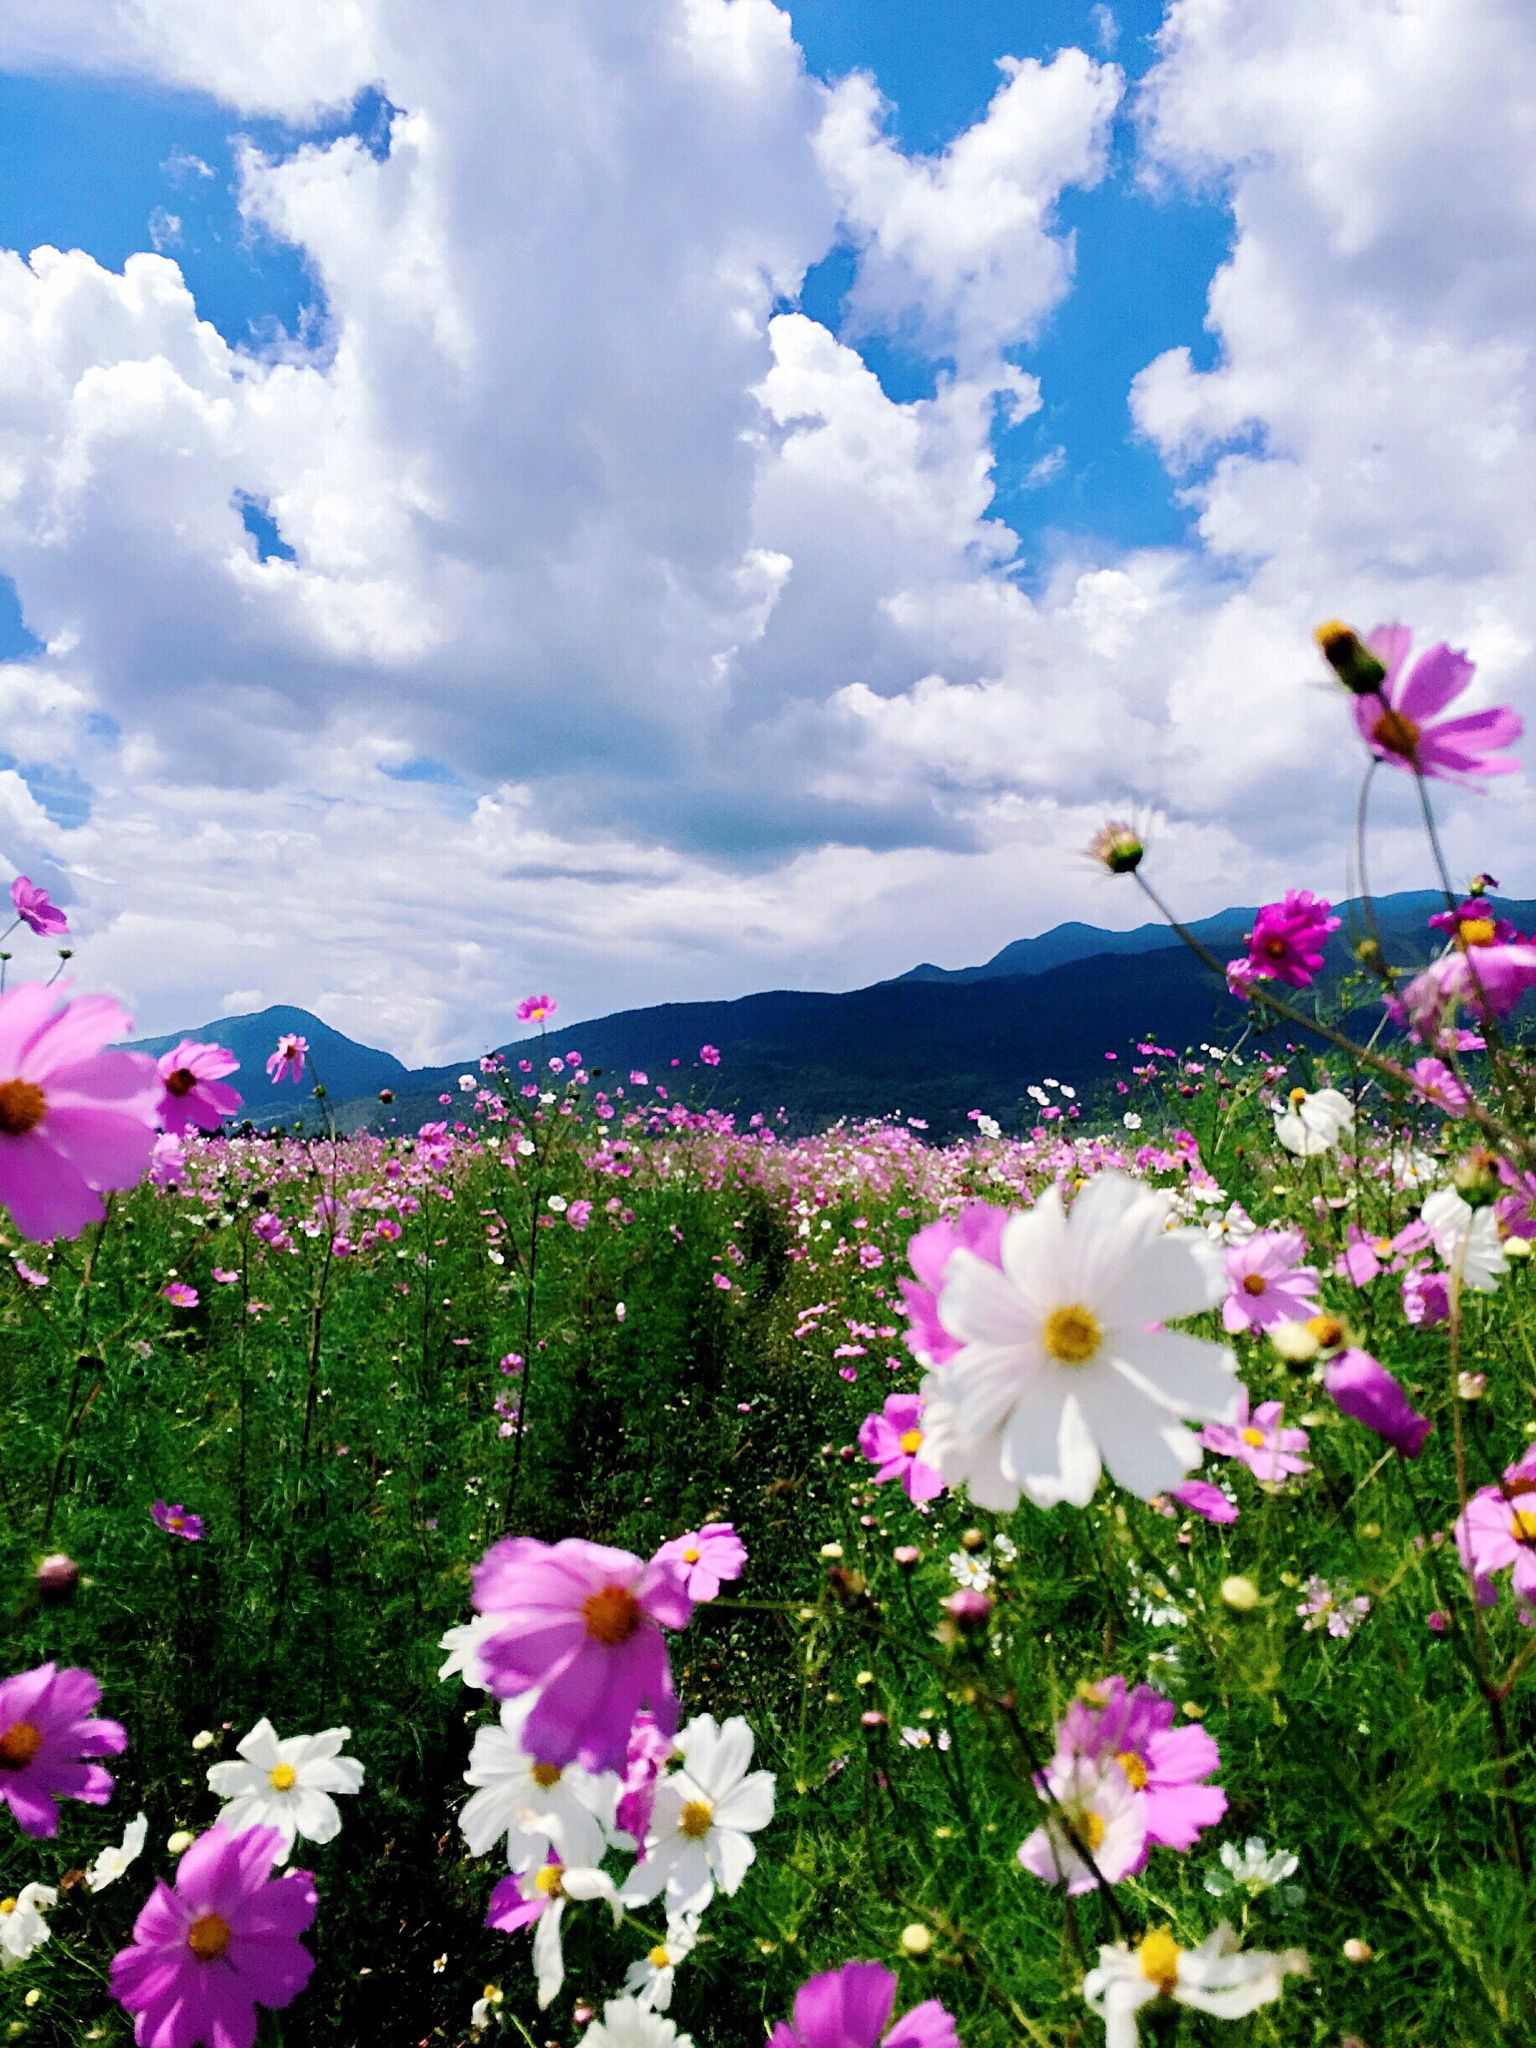 Beautiful scenery images with flowers simplexpict1st into the wild pretty nature flowers scenery and izmirmasajfo